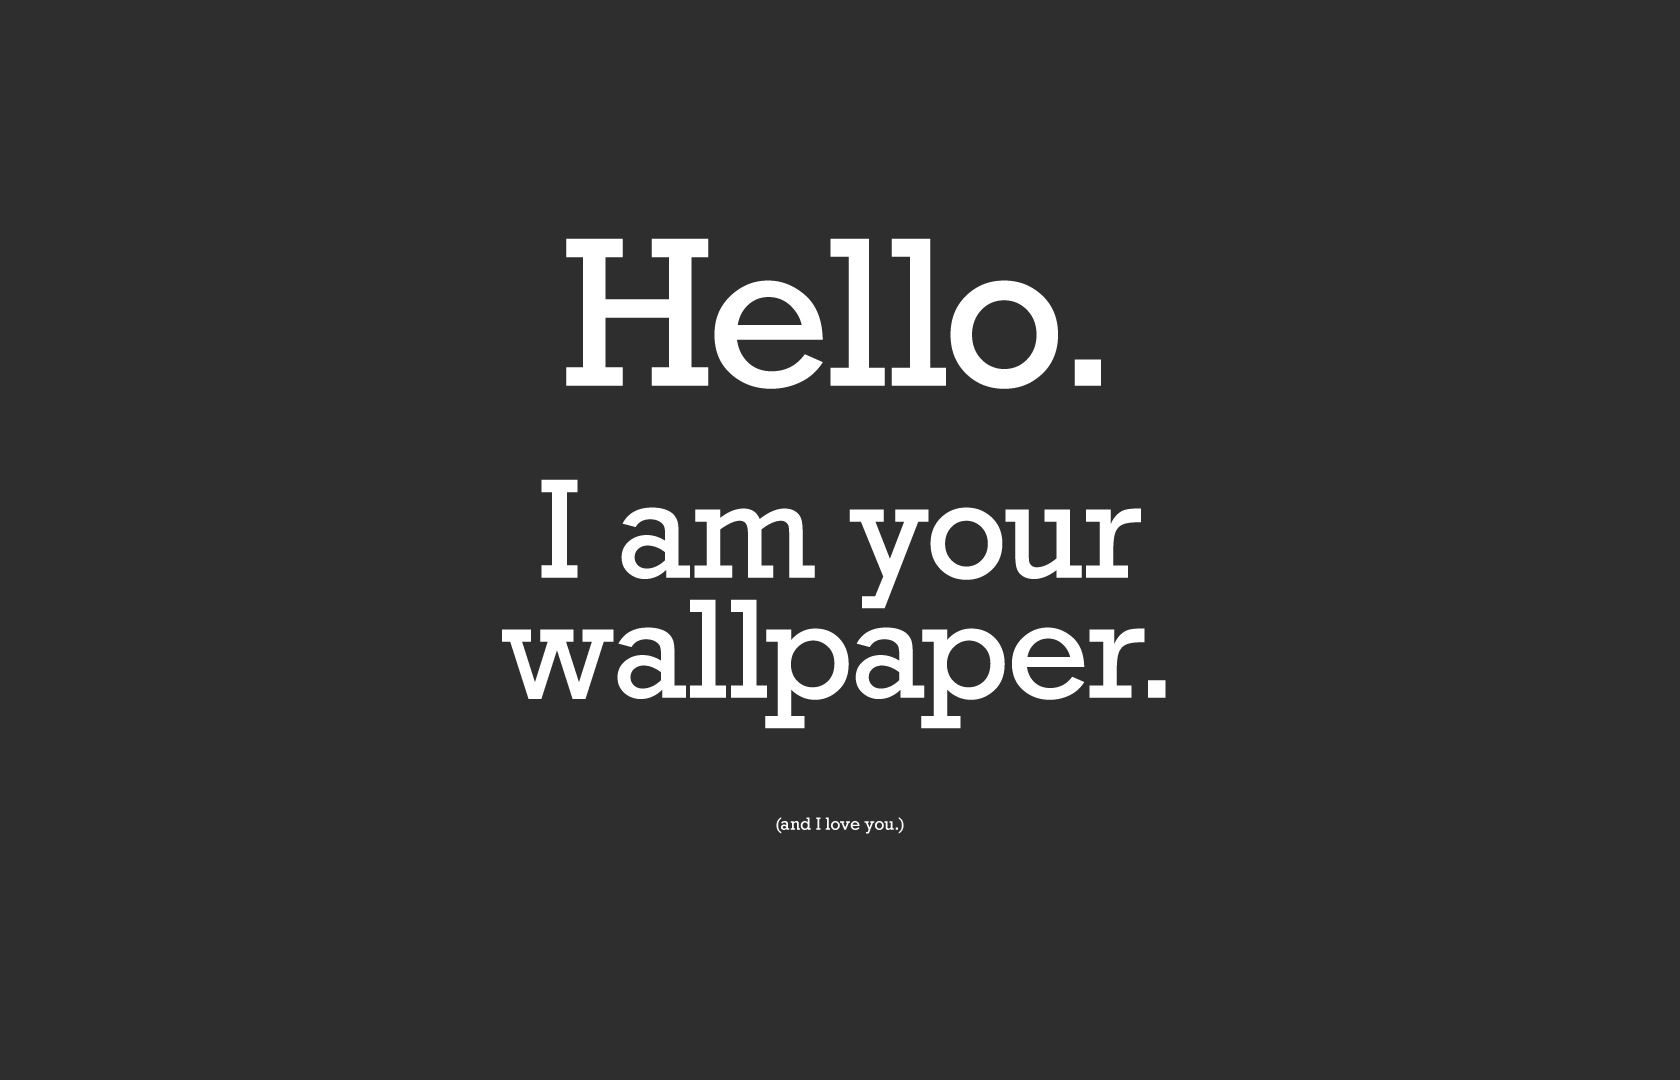 Wallpaper Funny Quotes